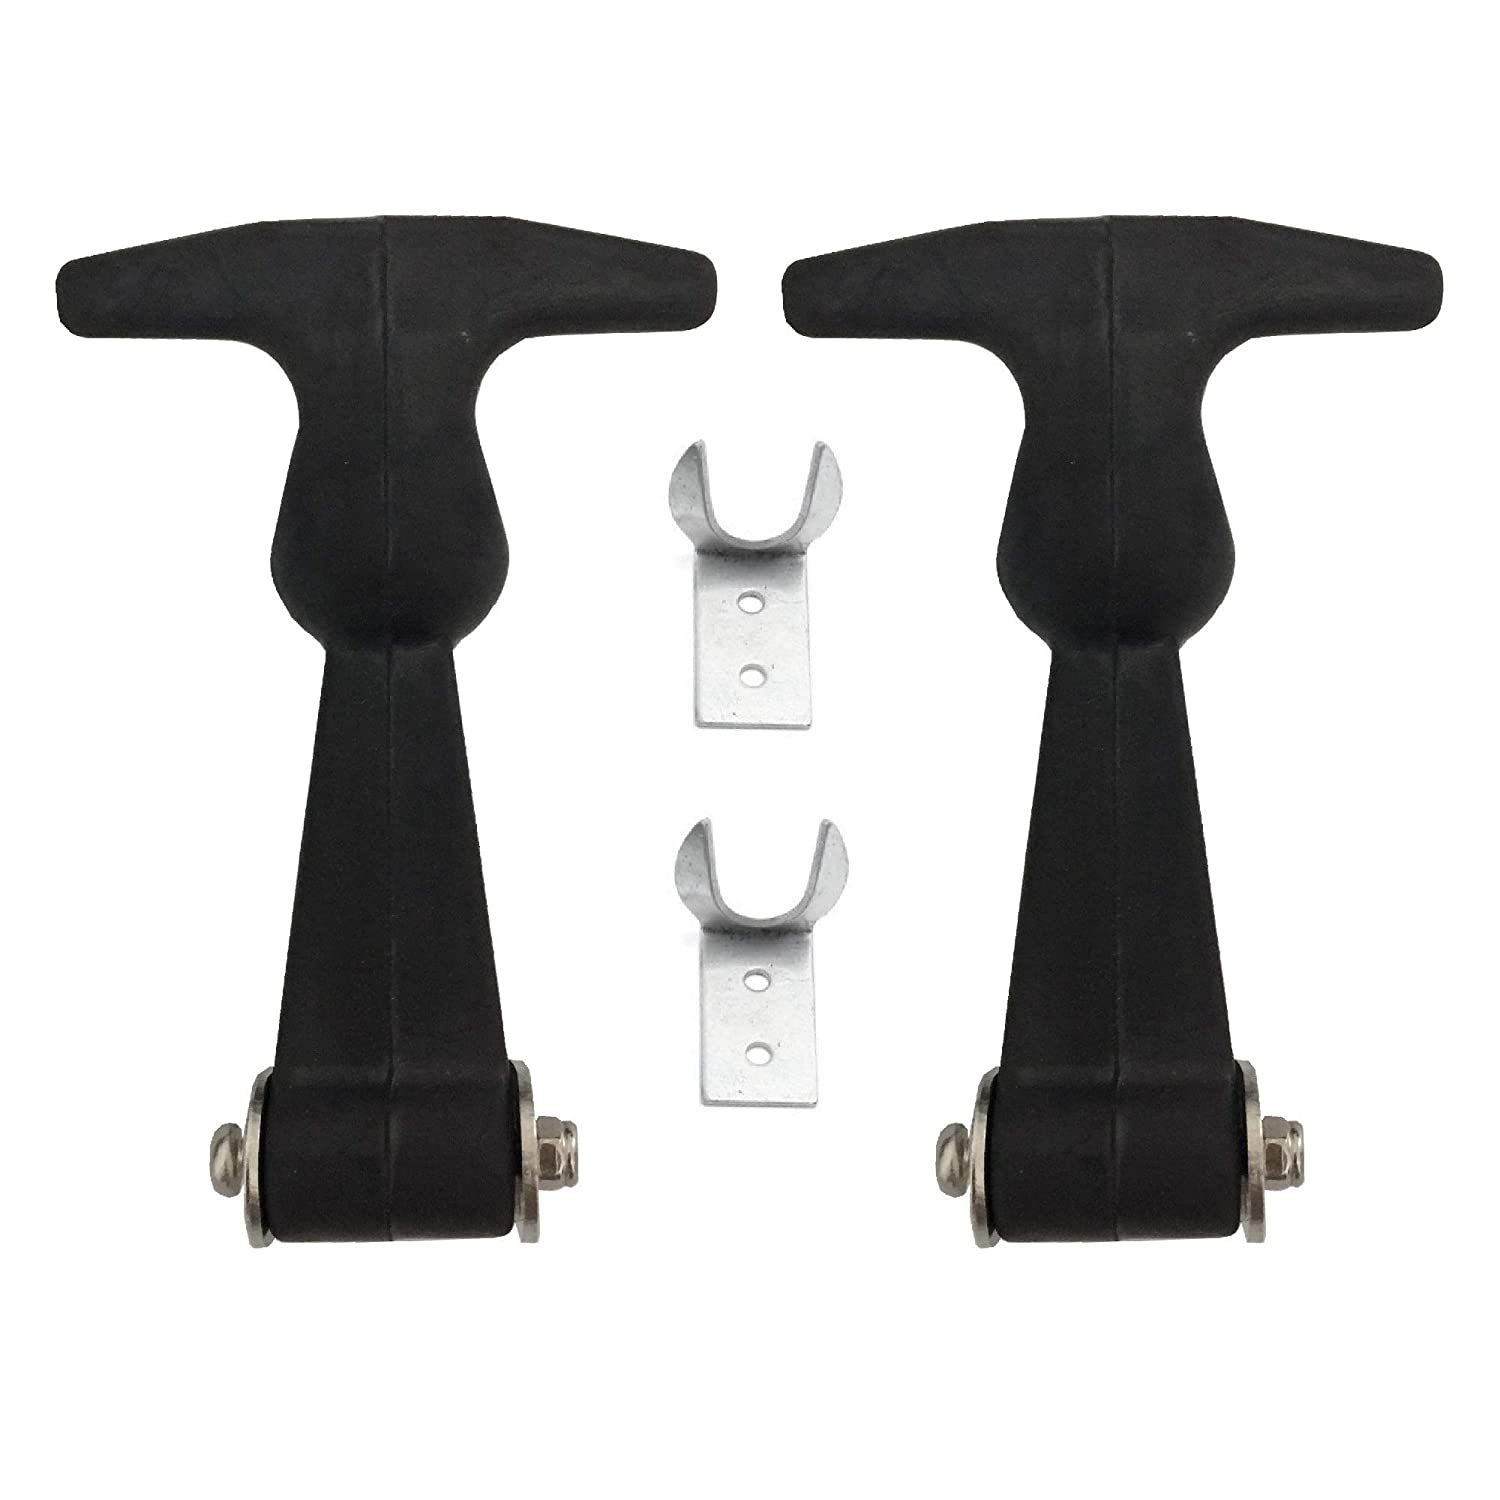 2 Pcs Rubber Flexible SUS304 Stainless Steel Soft Draw Latches Hasp